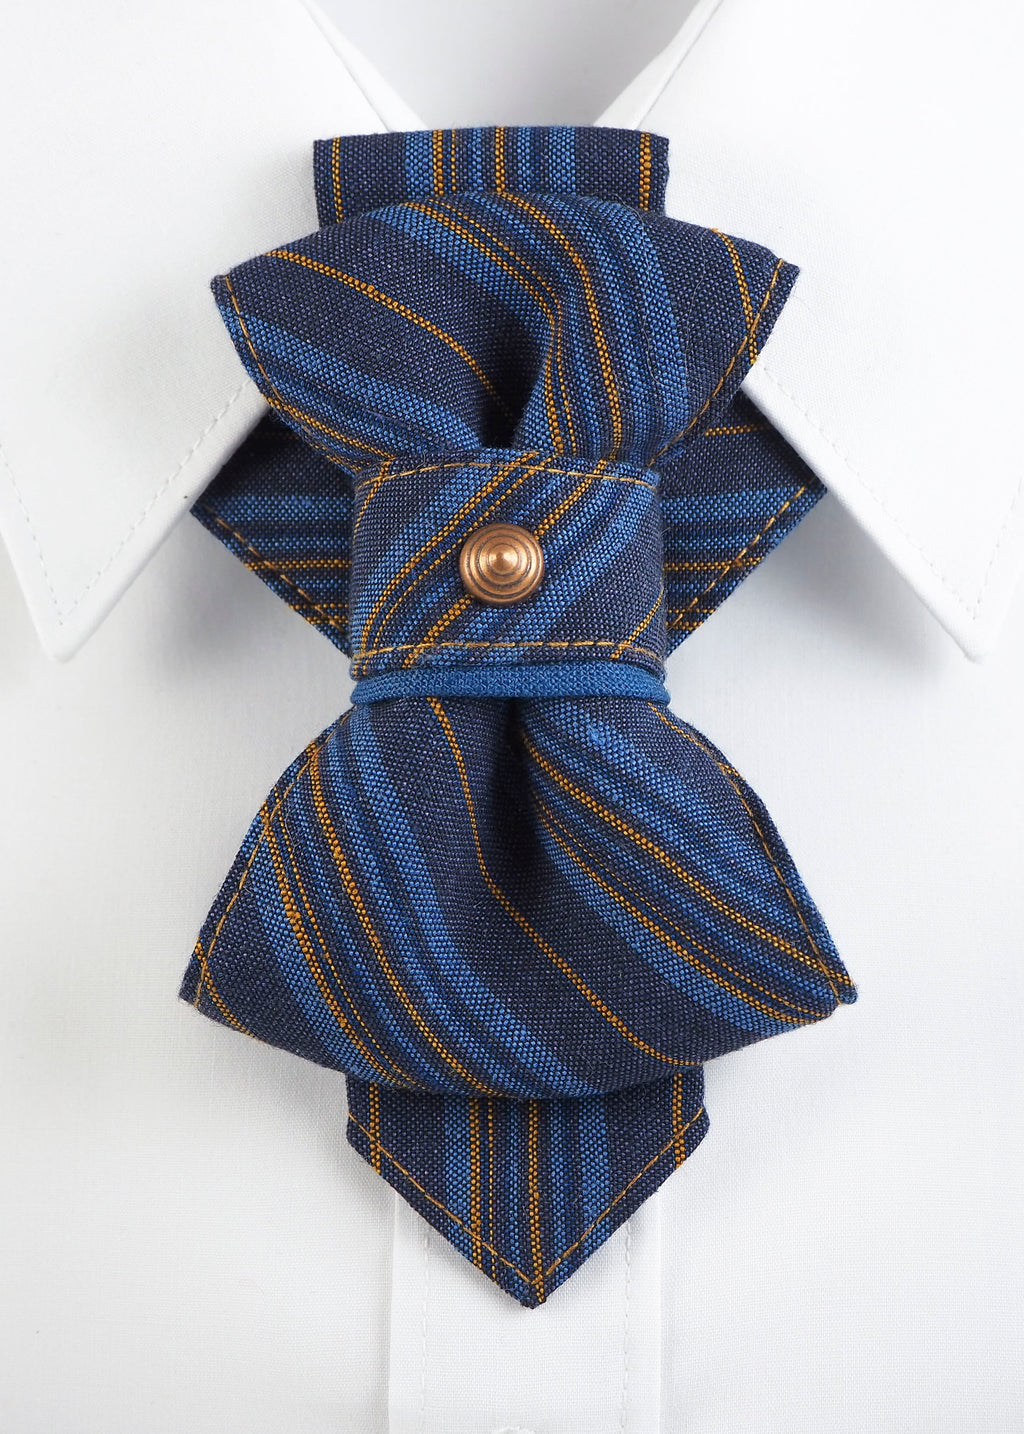 Ruty Design - bow tie jewelry, Bow tie, Necktie, Ruty tie, Hopper bow tie, Vertical bow tie, Hopper tie, Ruty design, Men's Bow Ties,  men's accessories,  Original bow tie, Ruty hopper is original vertical bow tie, Fashion Bow Tie, Žiogas, Originali Peteliškė, Kaklaraištis, Originalus aksesuaras papuošalas vyrams.